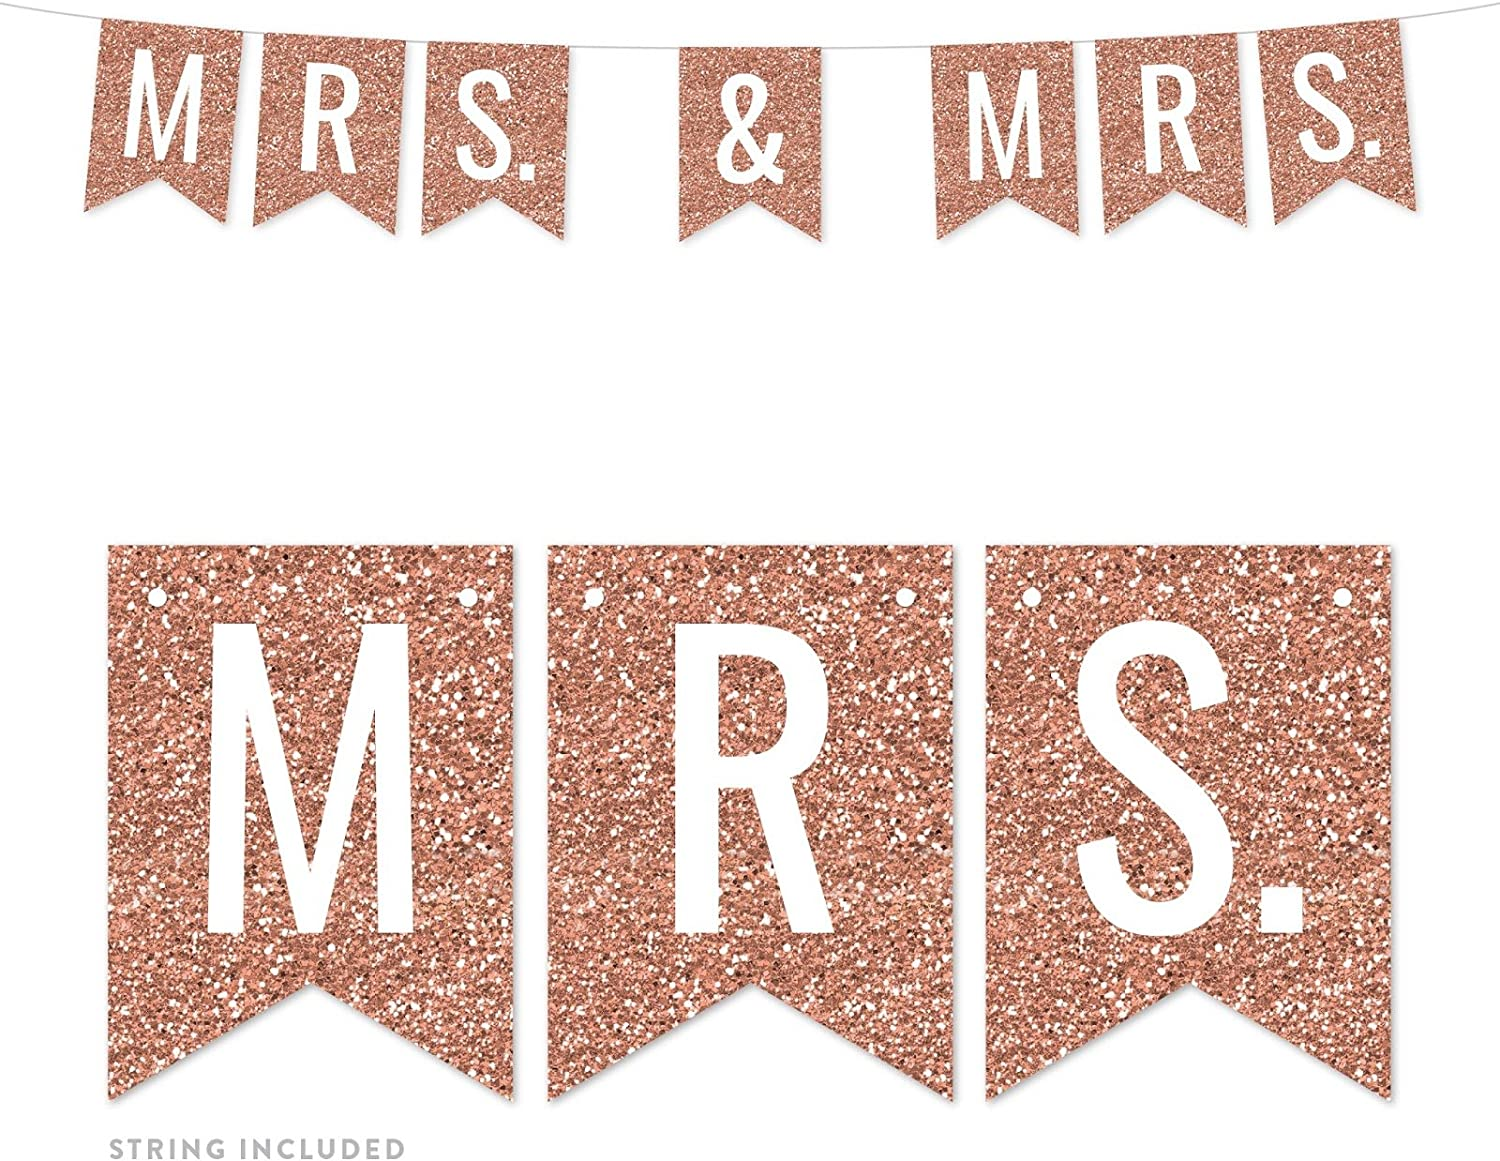 Andaz Press Rose Gold Faux Glitter Background Lesbian Wedding Party Banner Decorations, Mrs. & Mrs, Approx 5-Feet, 1-Set, Champagne Colored Hanging Pennant Decor